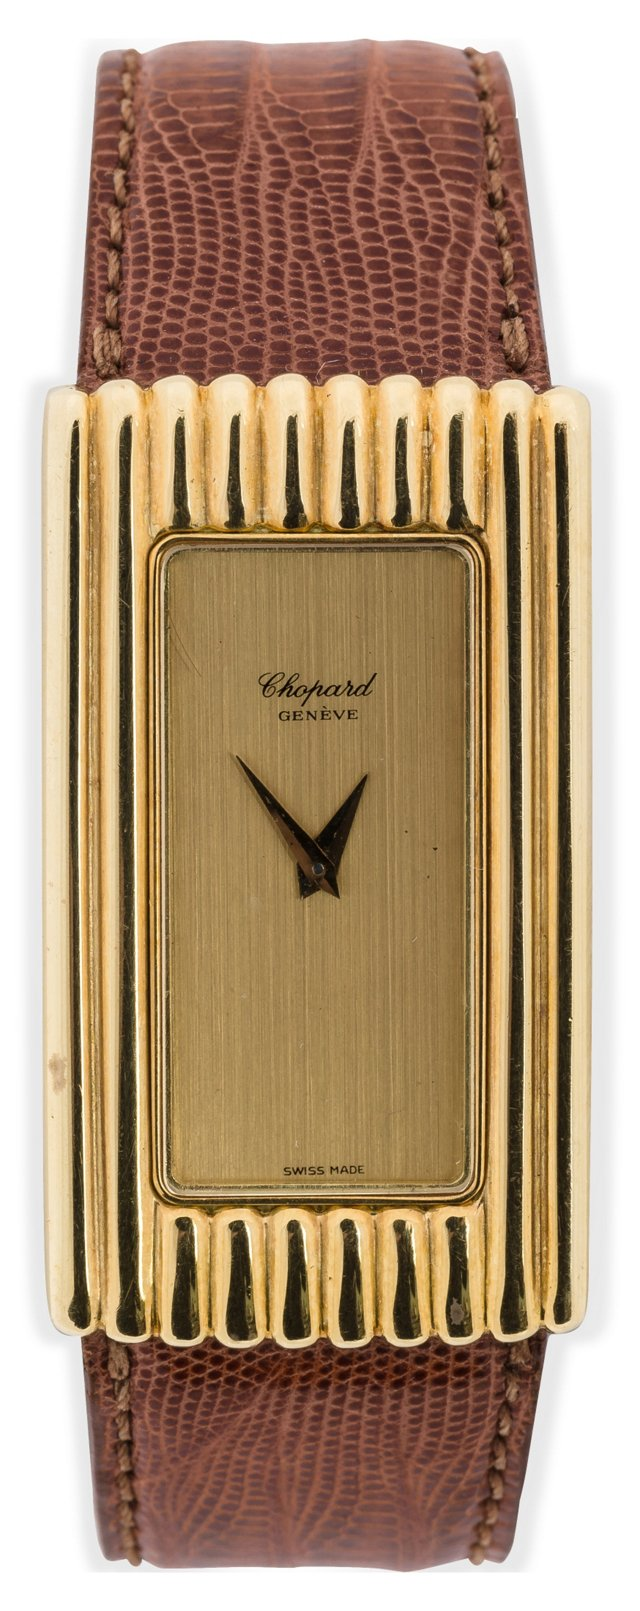 1970s Chopard Ladies' Watch